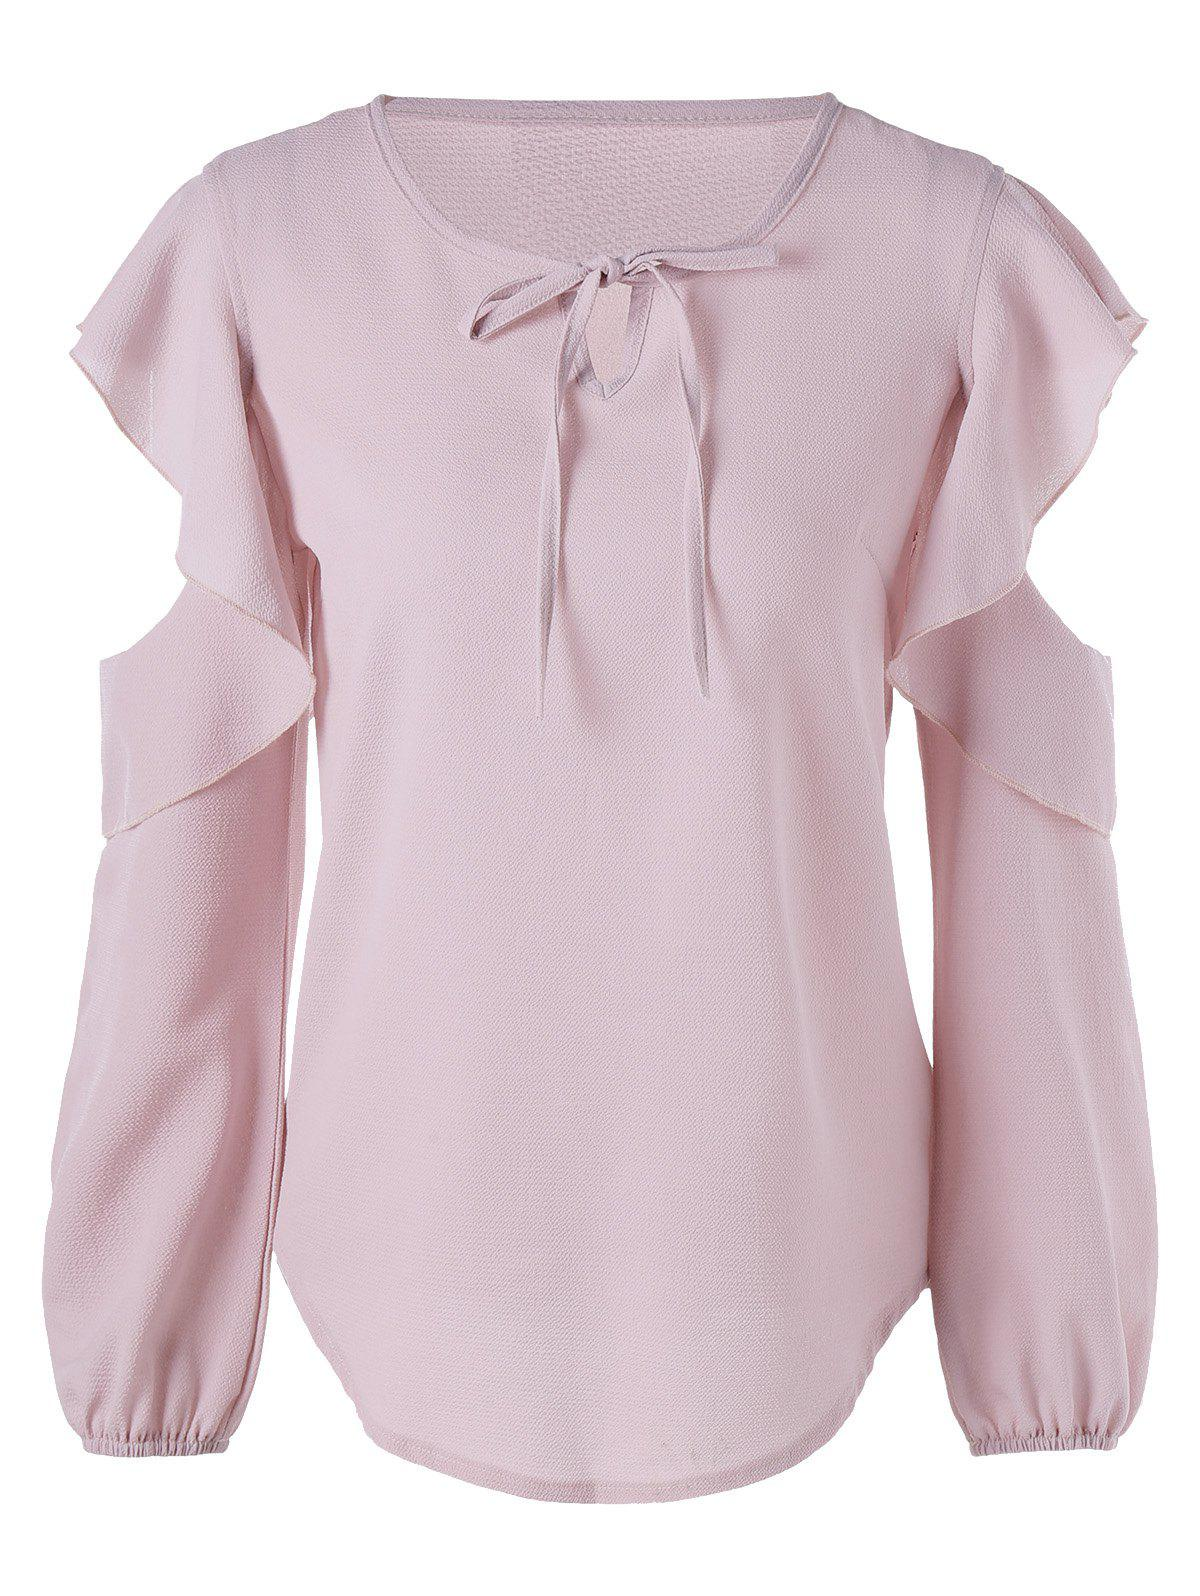 Cold Shoulder Flounced Chiffon Blouse - PINK XL